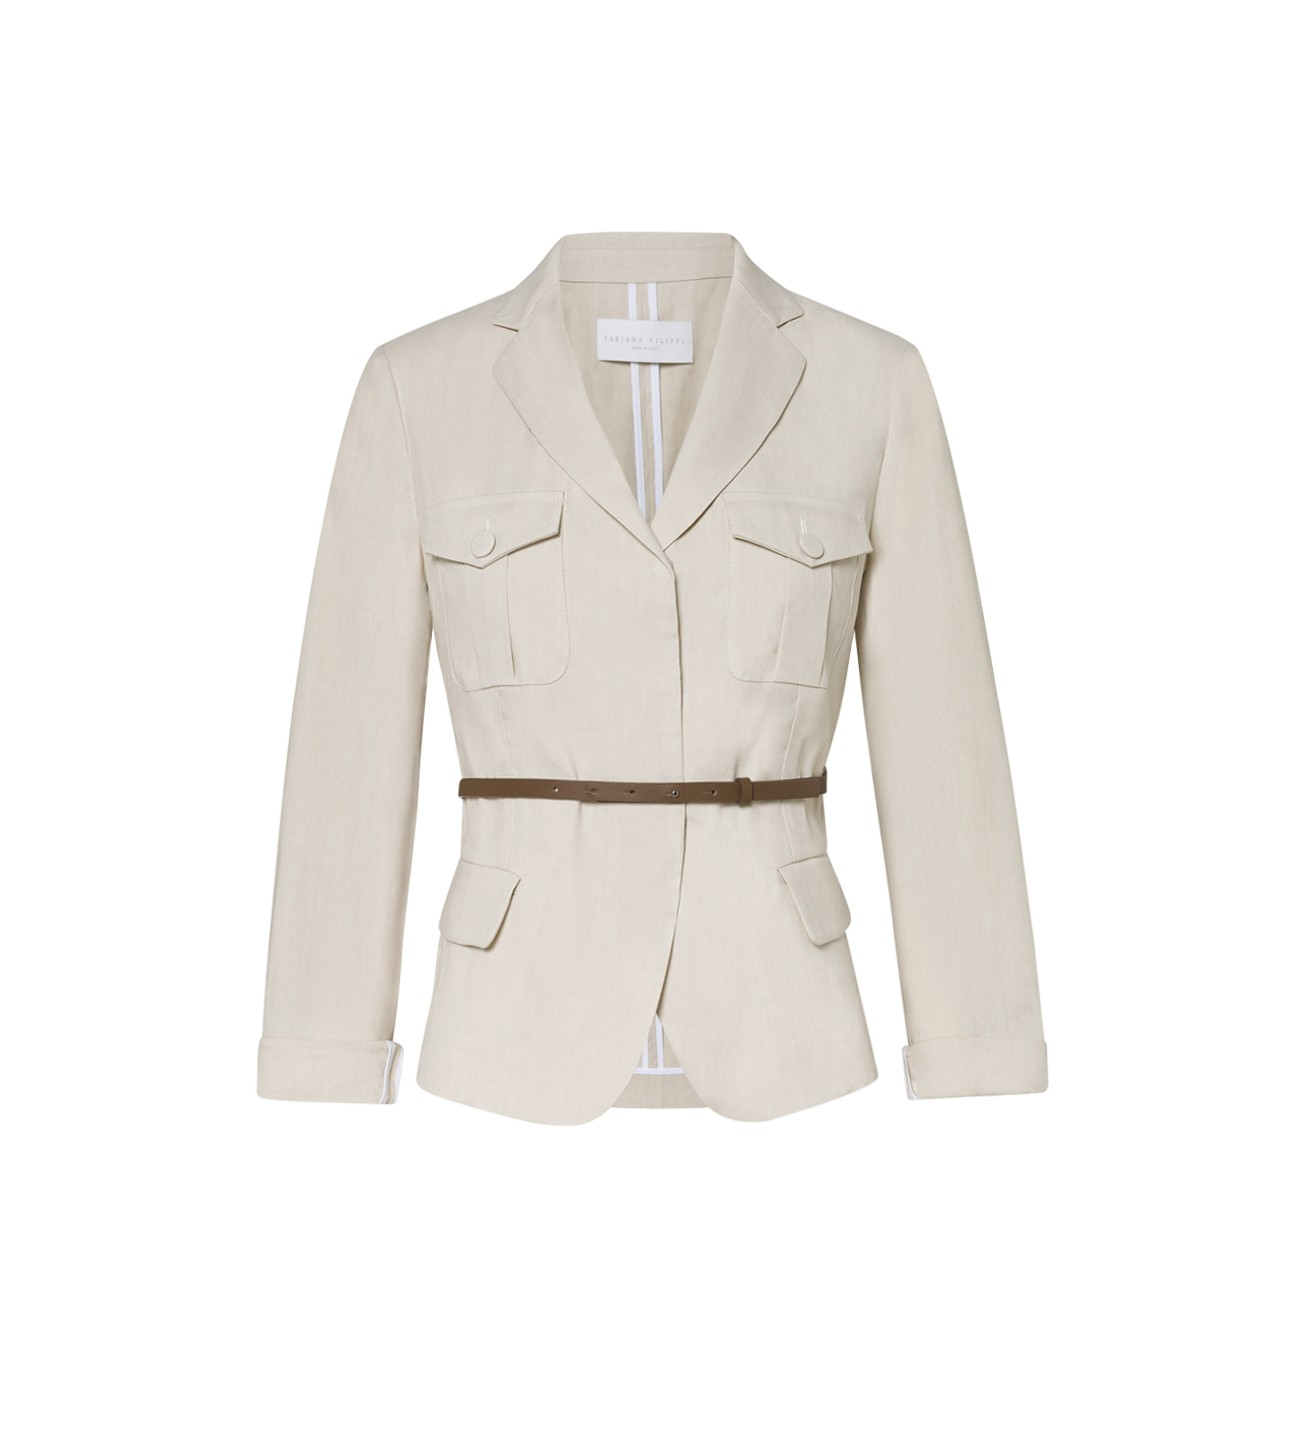 FABIANA_FILIPPI_SAHARIANA_JACKET_MARIONA_FASHION_CLOTHING_WOMAN_SHOP_ONLINE_GC53119